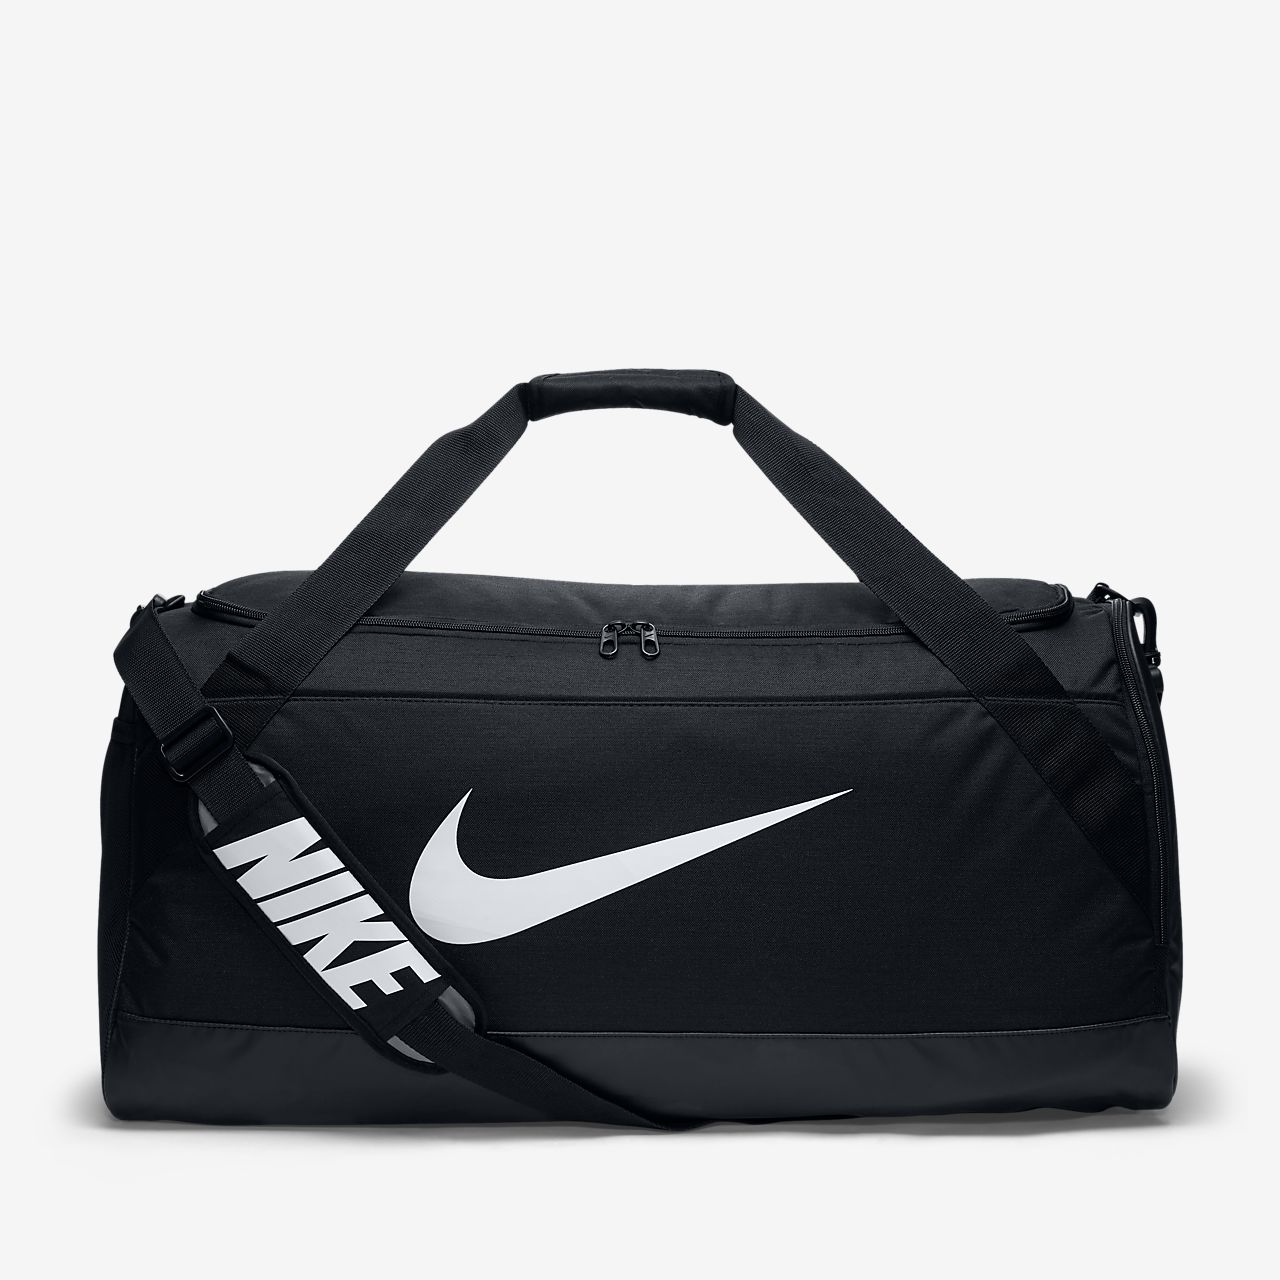 6621b81728144 Nike Brasilia (Large) Training Duffel Bag. Nike.com AU